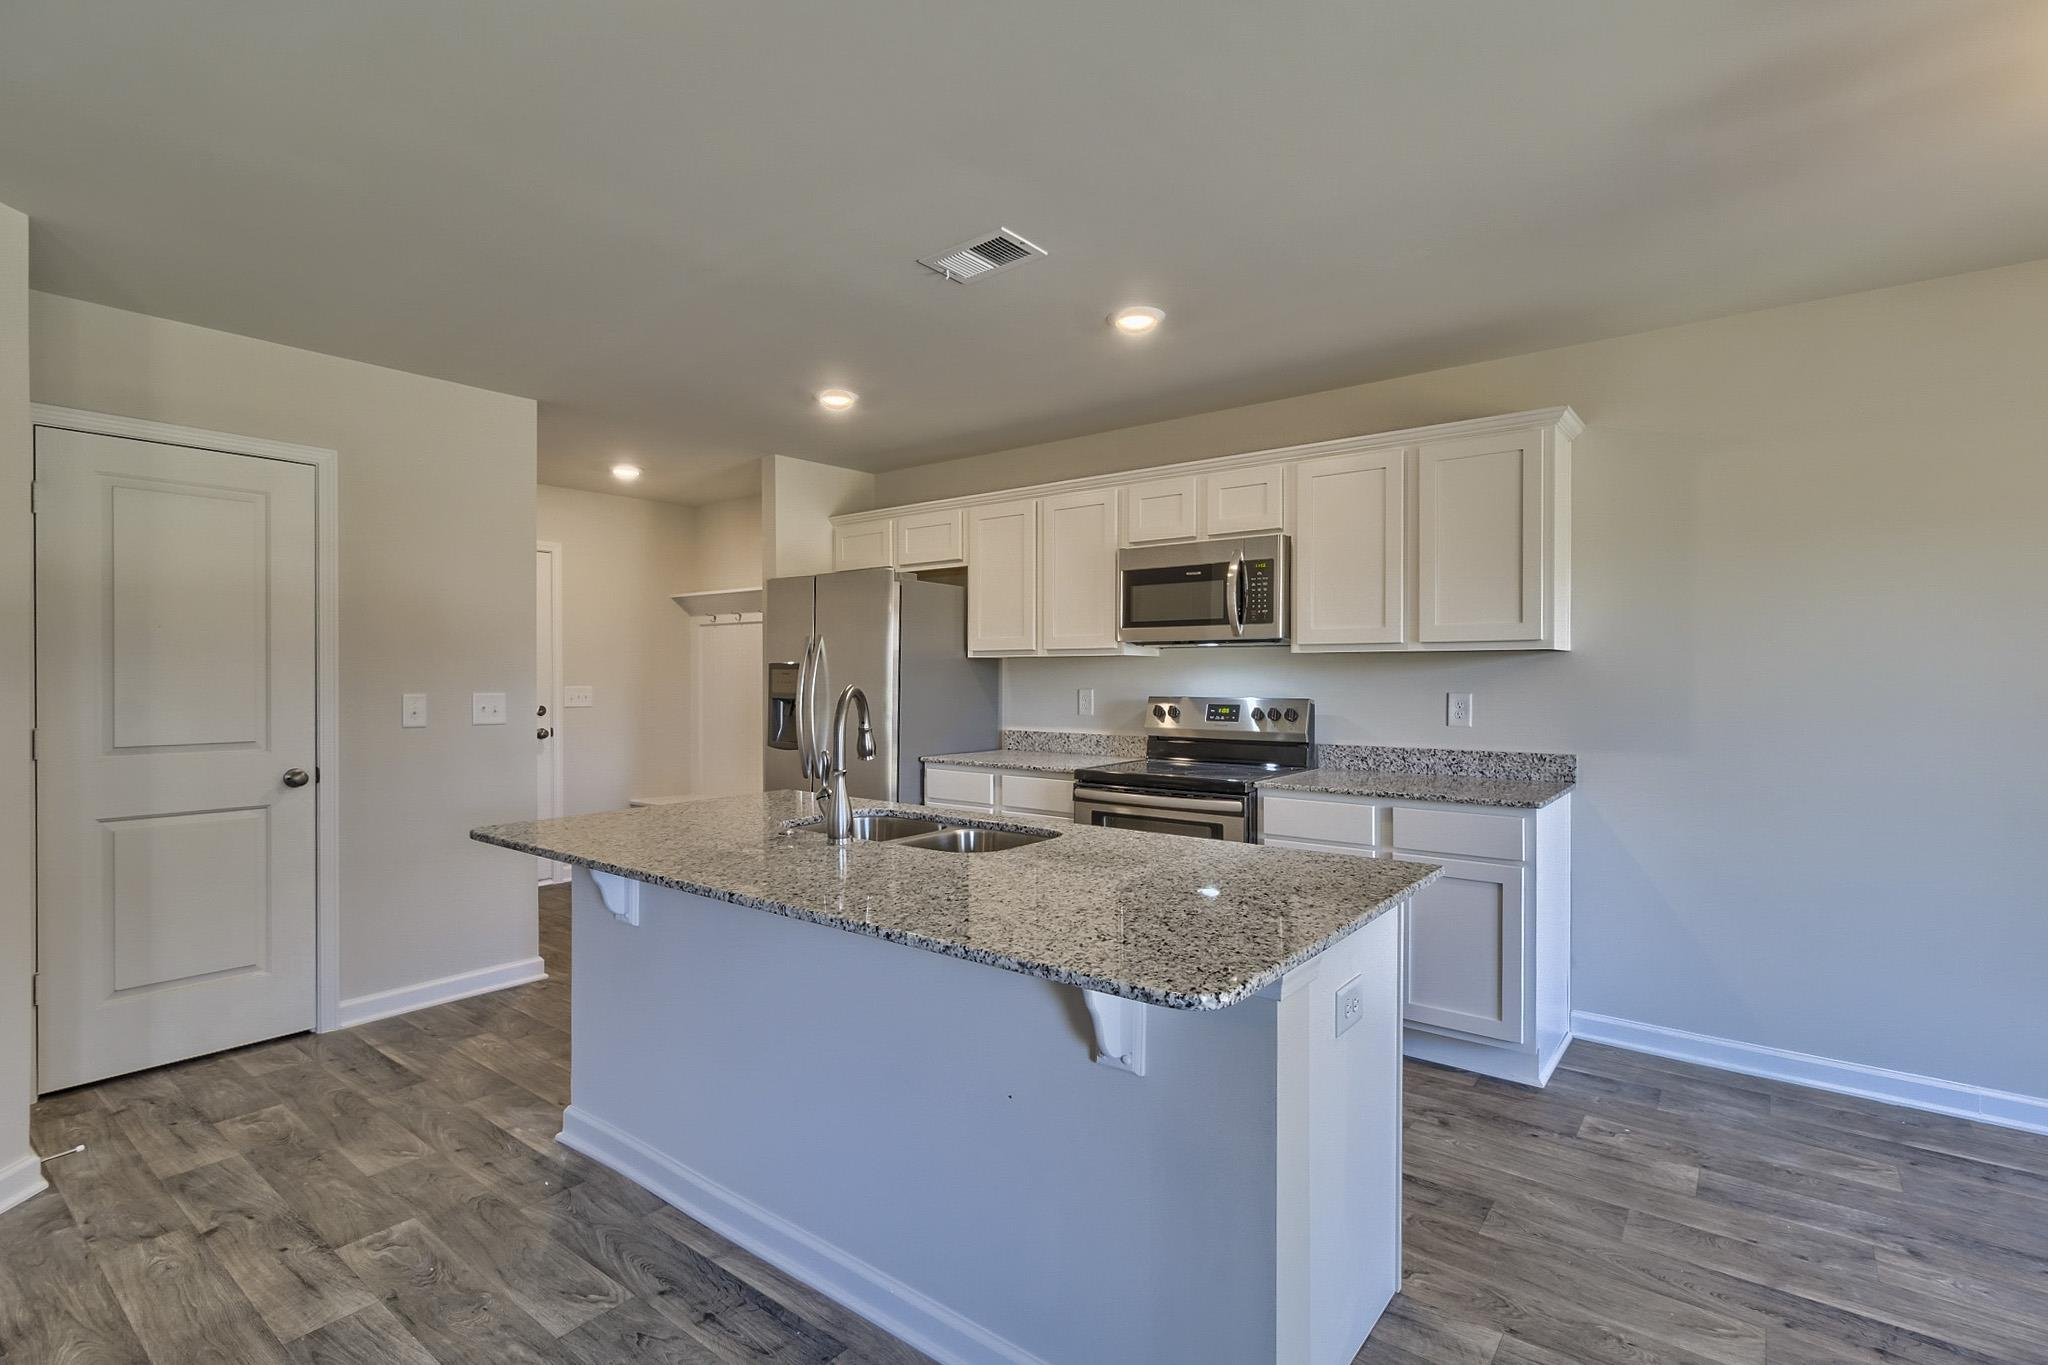 Kitchen featured in the Cypress By McGuinn Hybrid Homes in Columbia, SC